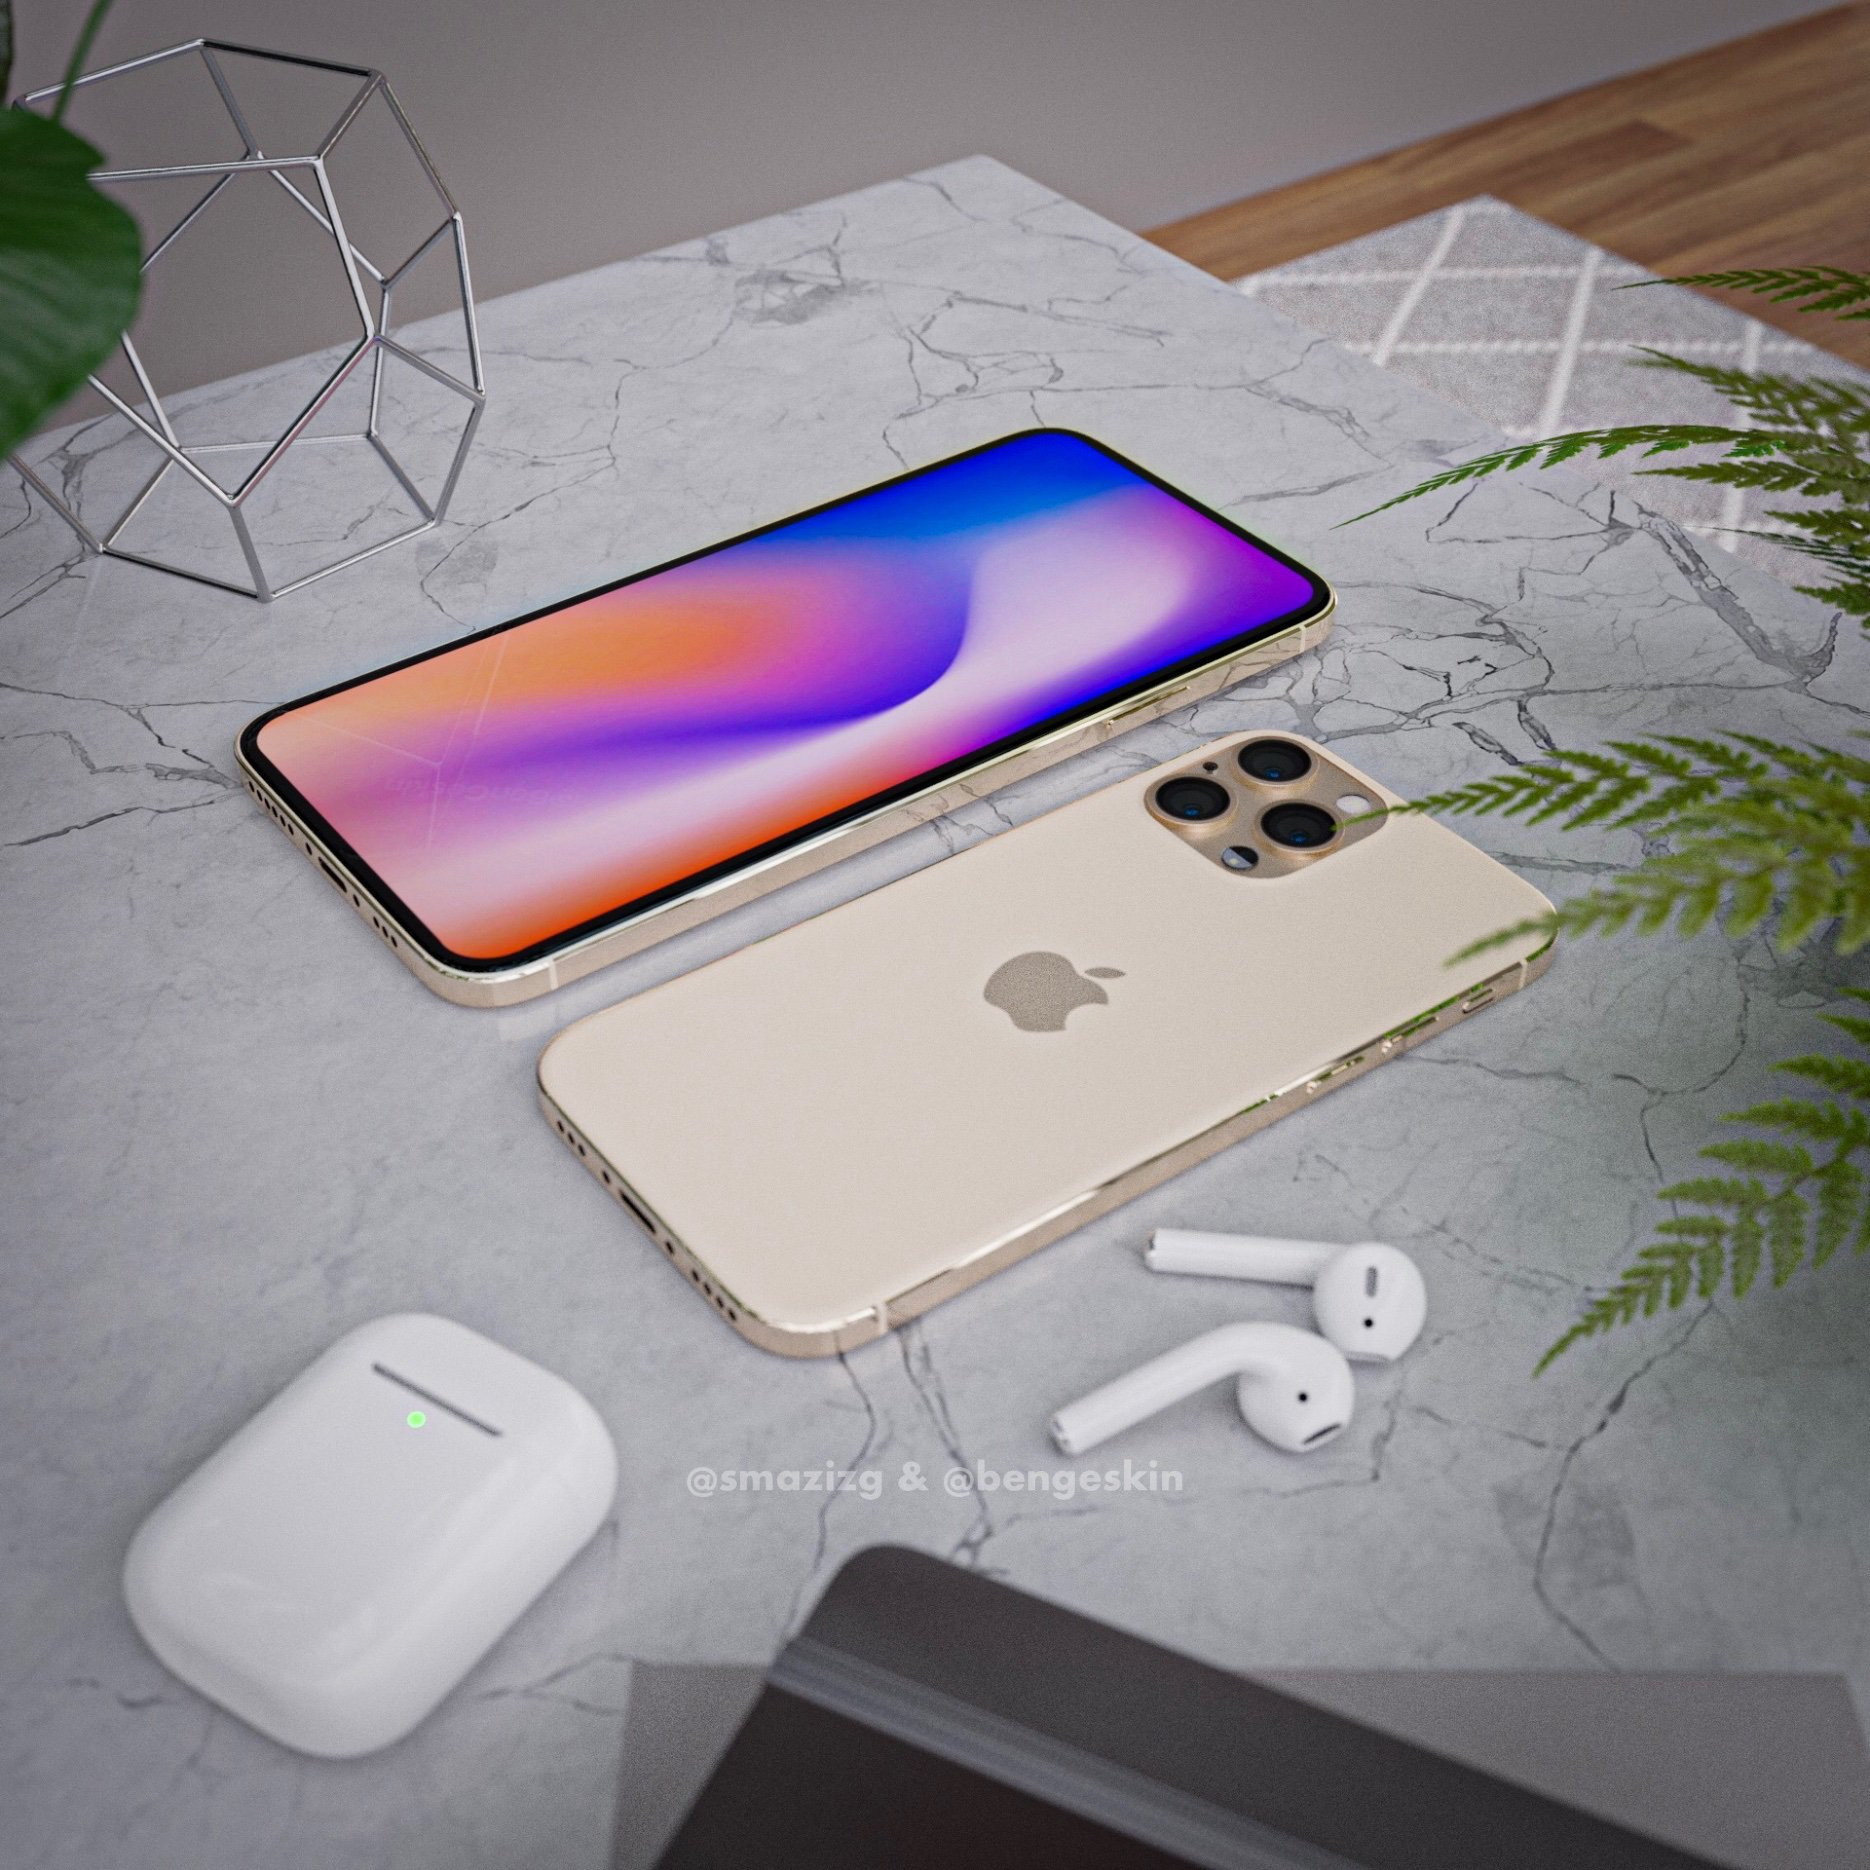 Image result for iPhone 12 render  - HD images